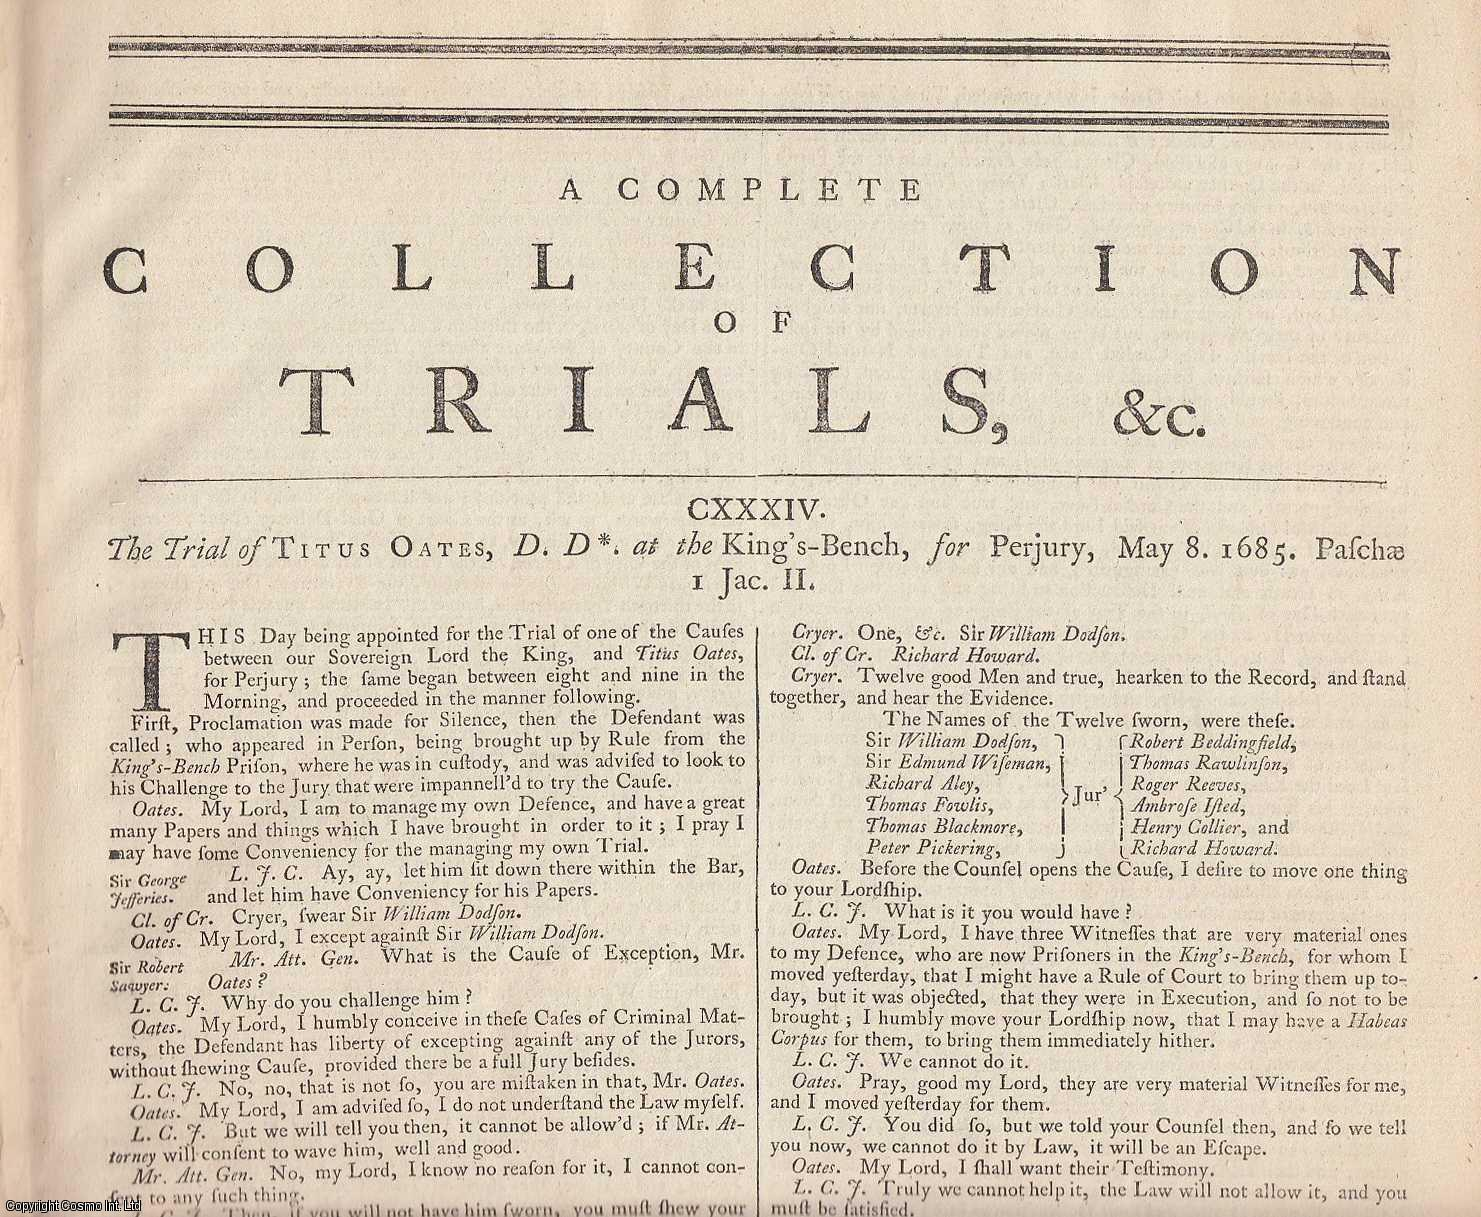 POPISH PLOT, 1678-1685.  An outstanding collection of State Trials & Reports, featuring the Trial of Titus Oates and Others, for plotting the killing of Charles II., [Trial].